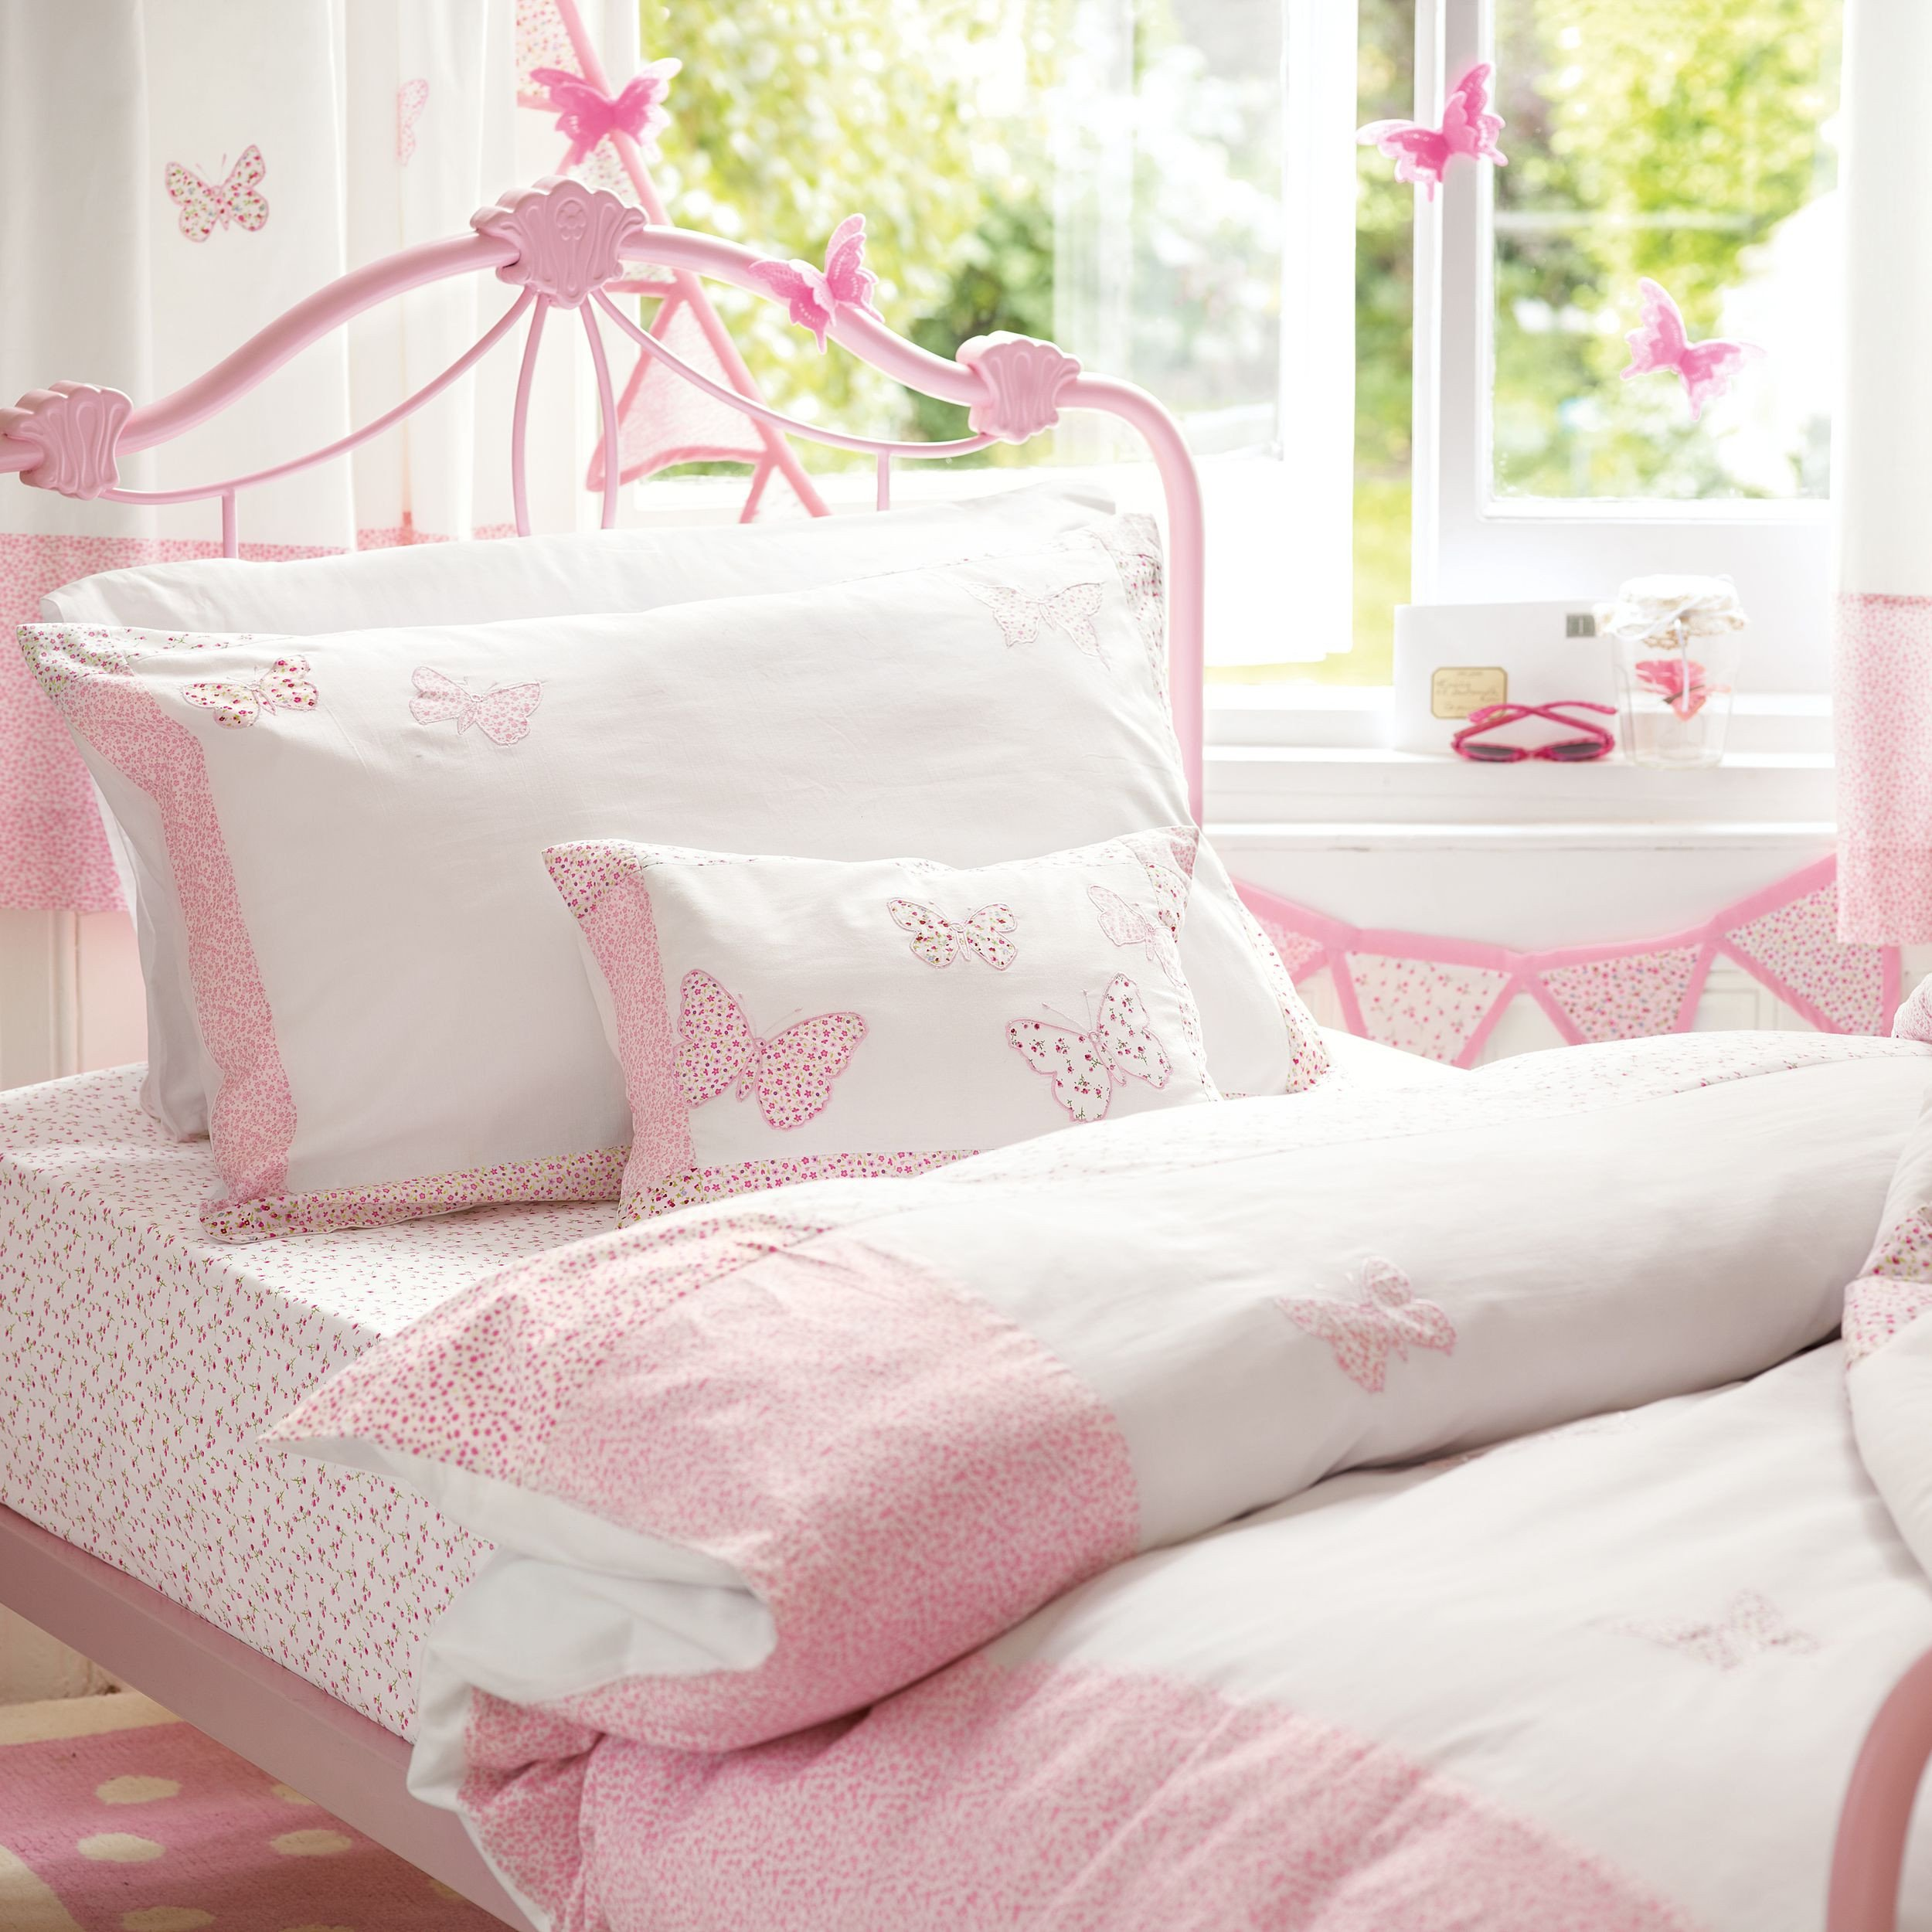 Laura ashley Bedroom Set Fresh Bella butterfly Pink Cotton Duvet Set Laura ashley